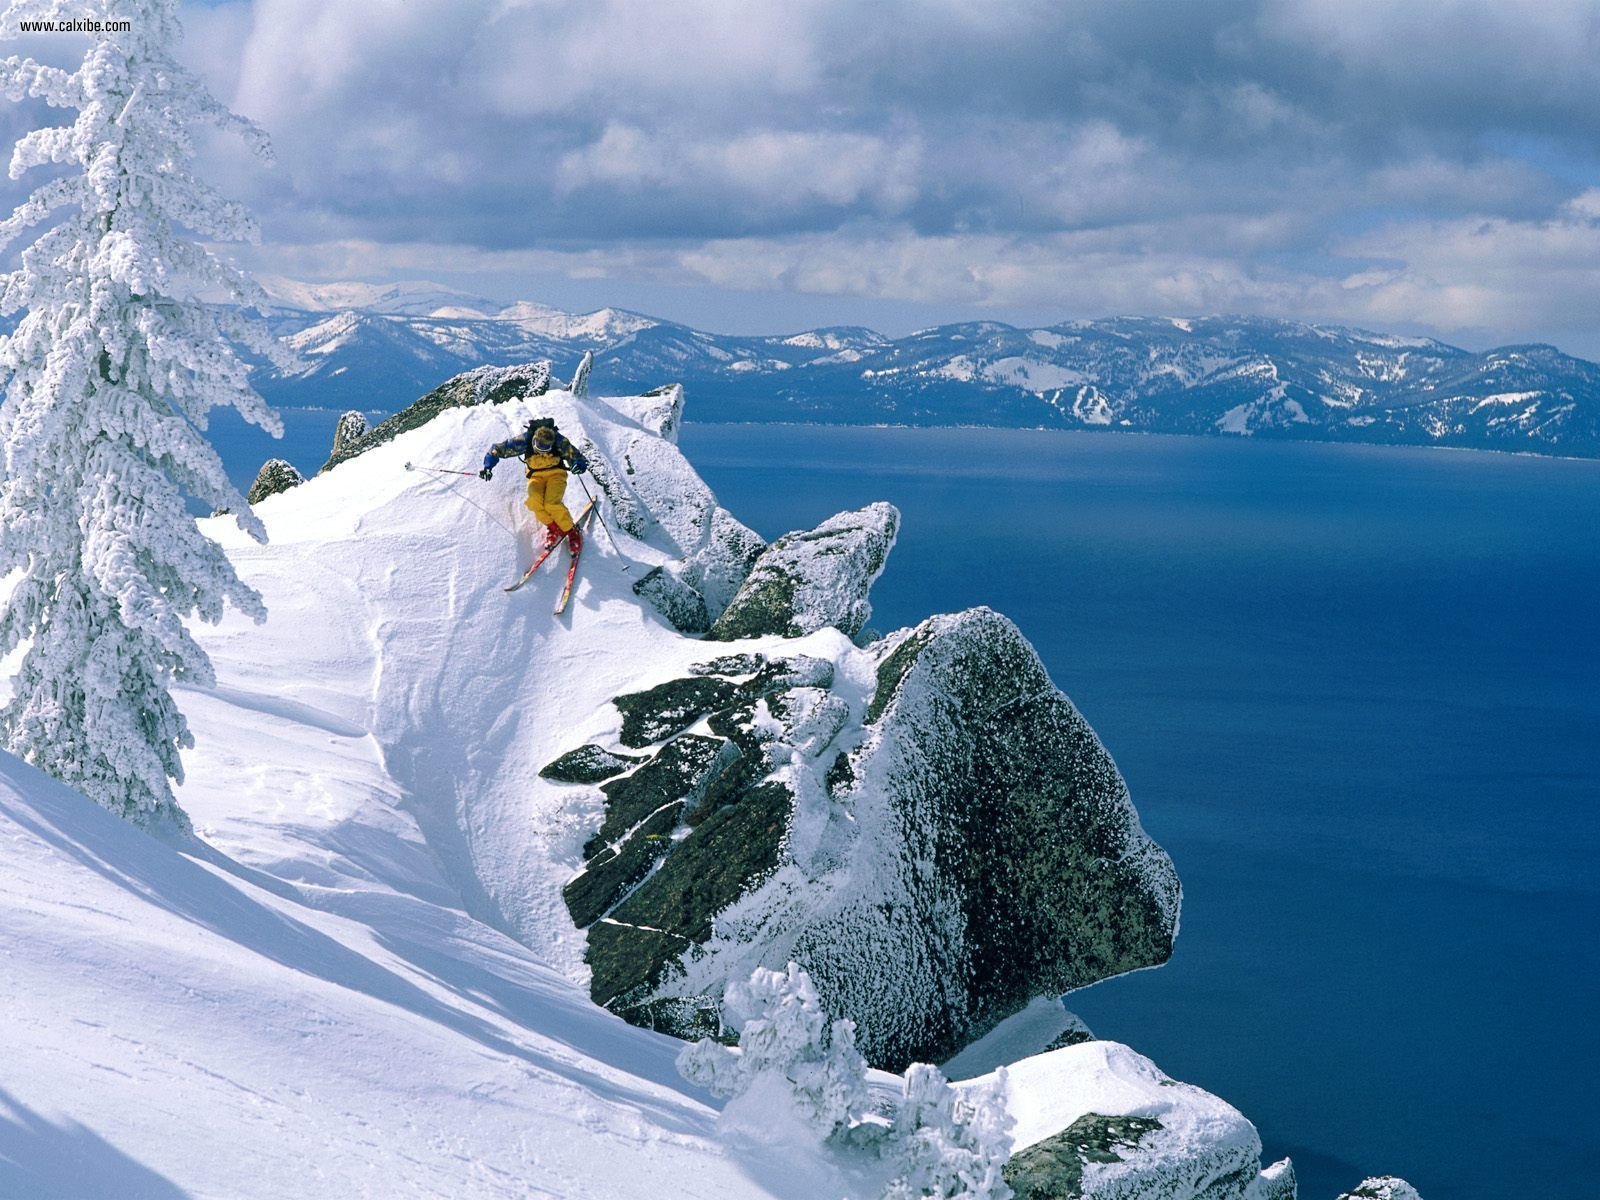 Lake-Tahoe-Winter-Sports.jpg